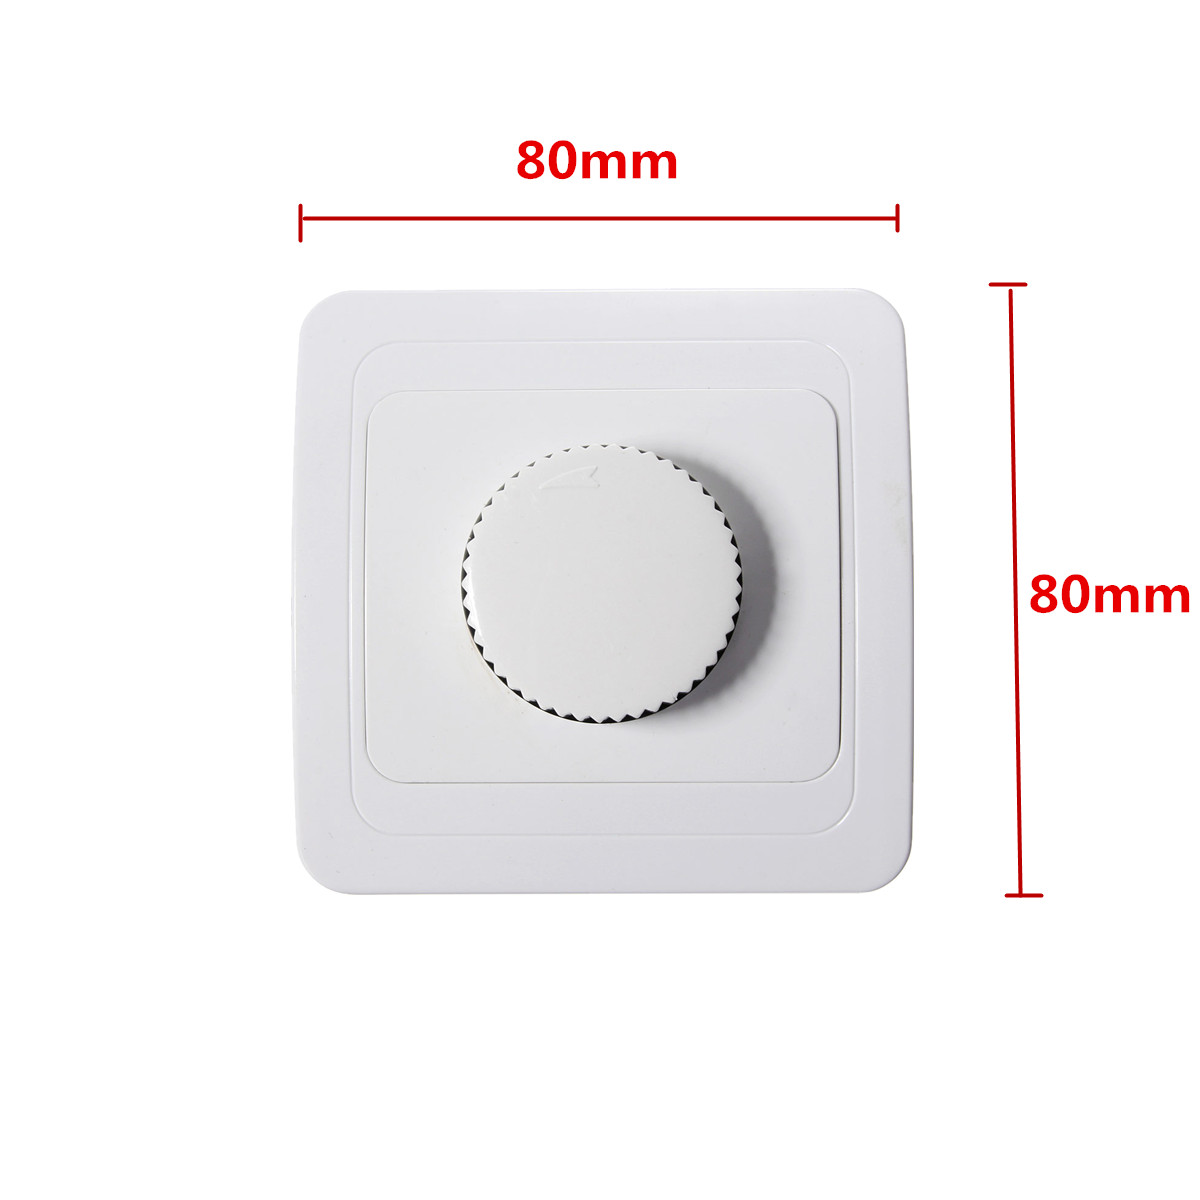 Rotary Dimmer Switch Light Intensity Brightness Control Socket Panel Plate